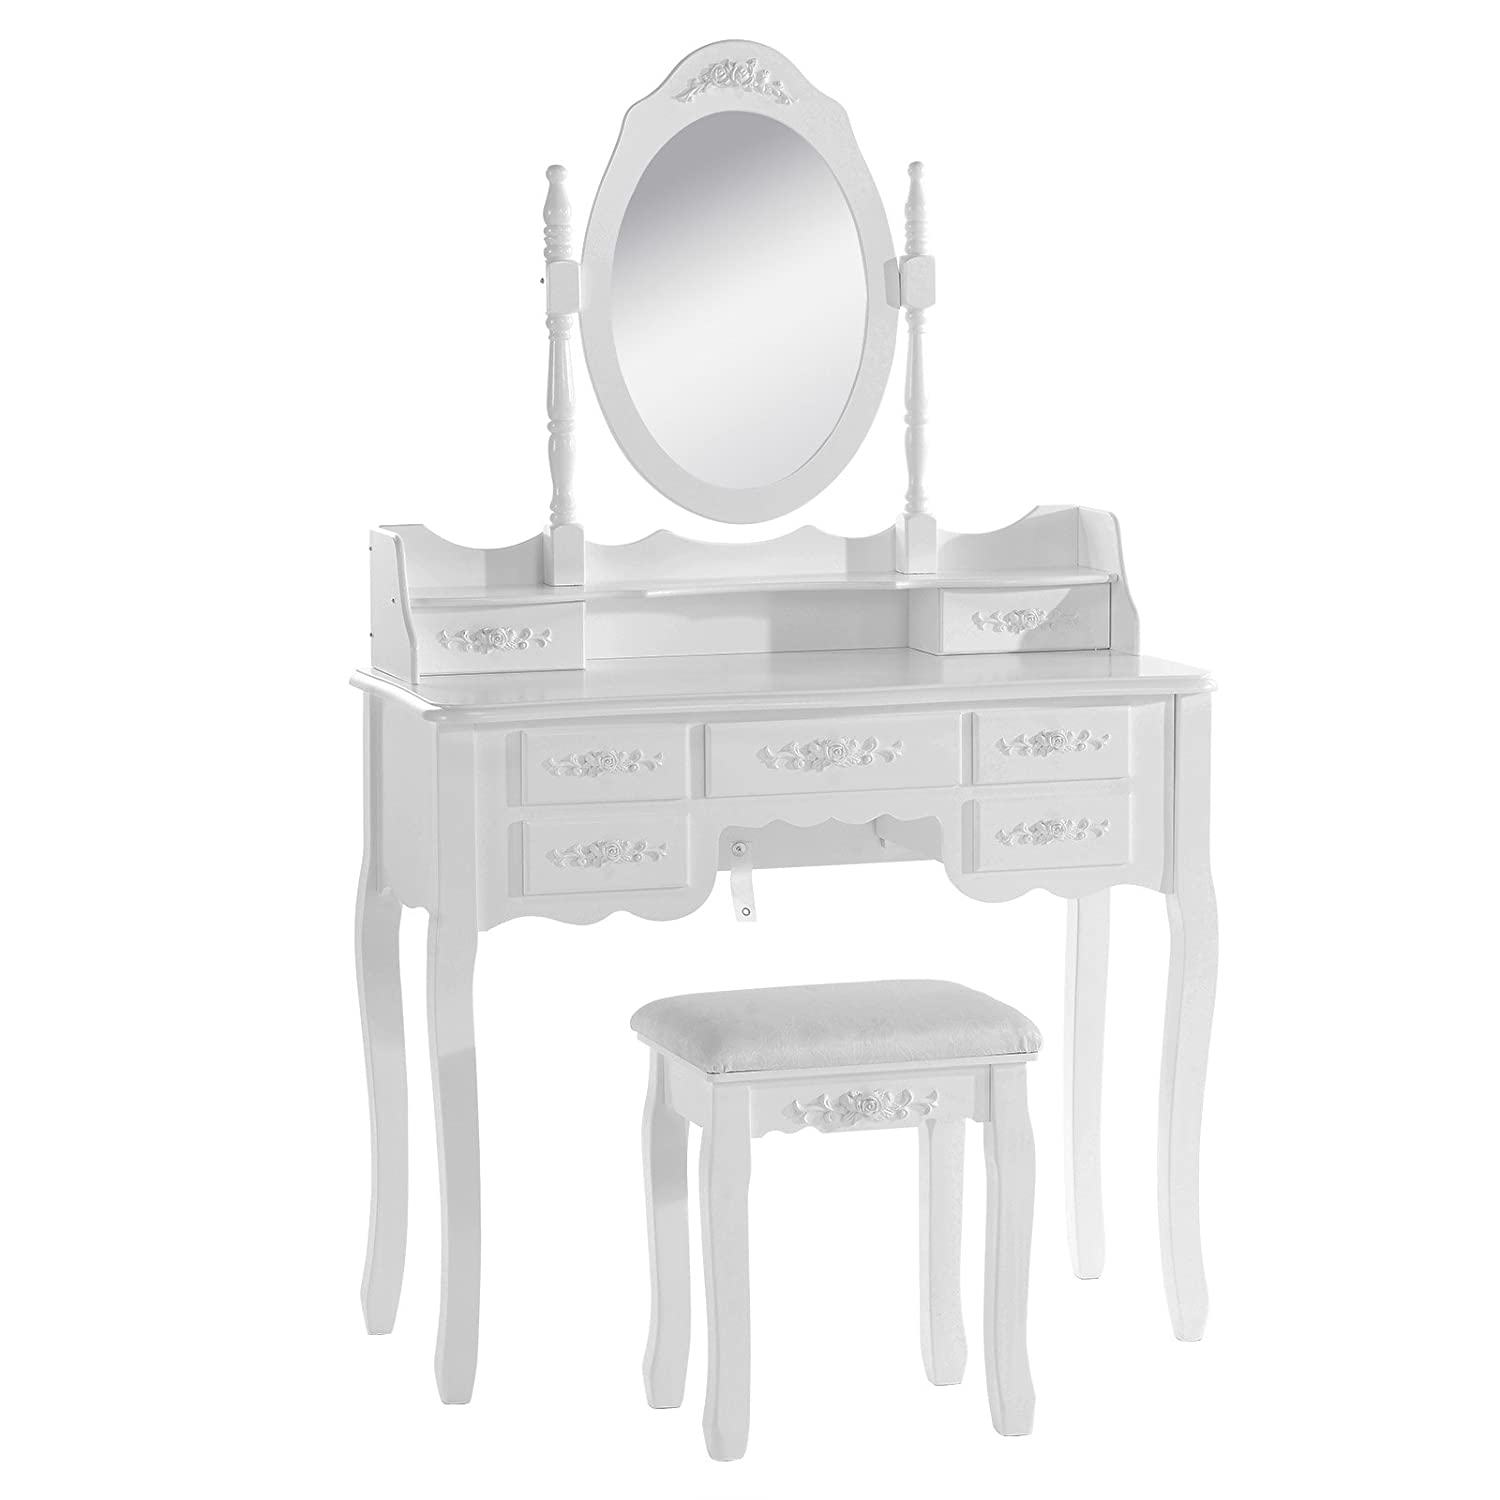 WOLTU White Dressing Table with Stool and Adjustable Mirror, 7 Drawers White Makeup Desk for Home Bedroom 90 x 40 x 144.5cm(L x W x H) MB6026cm